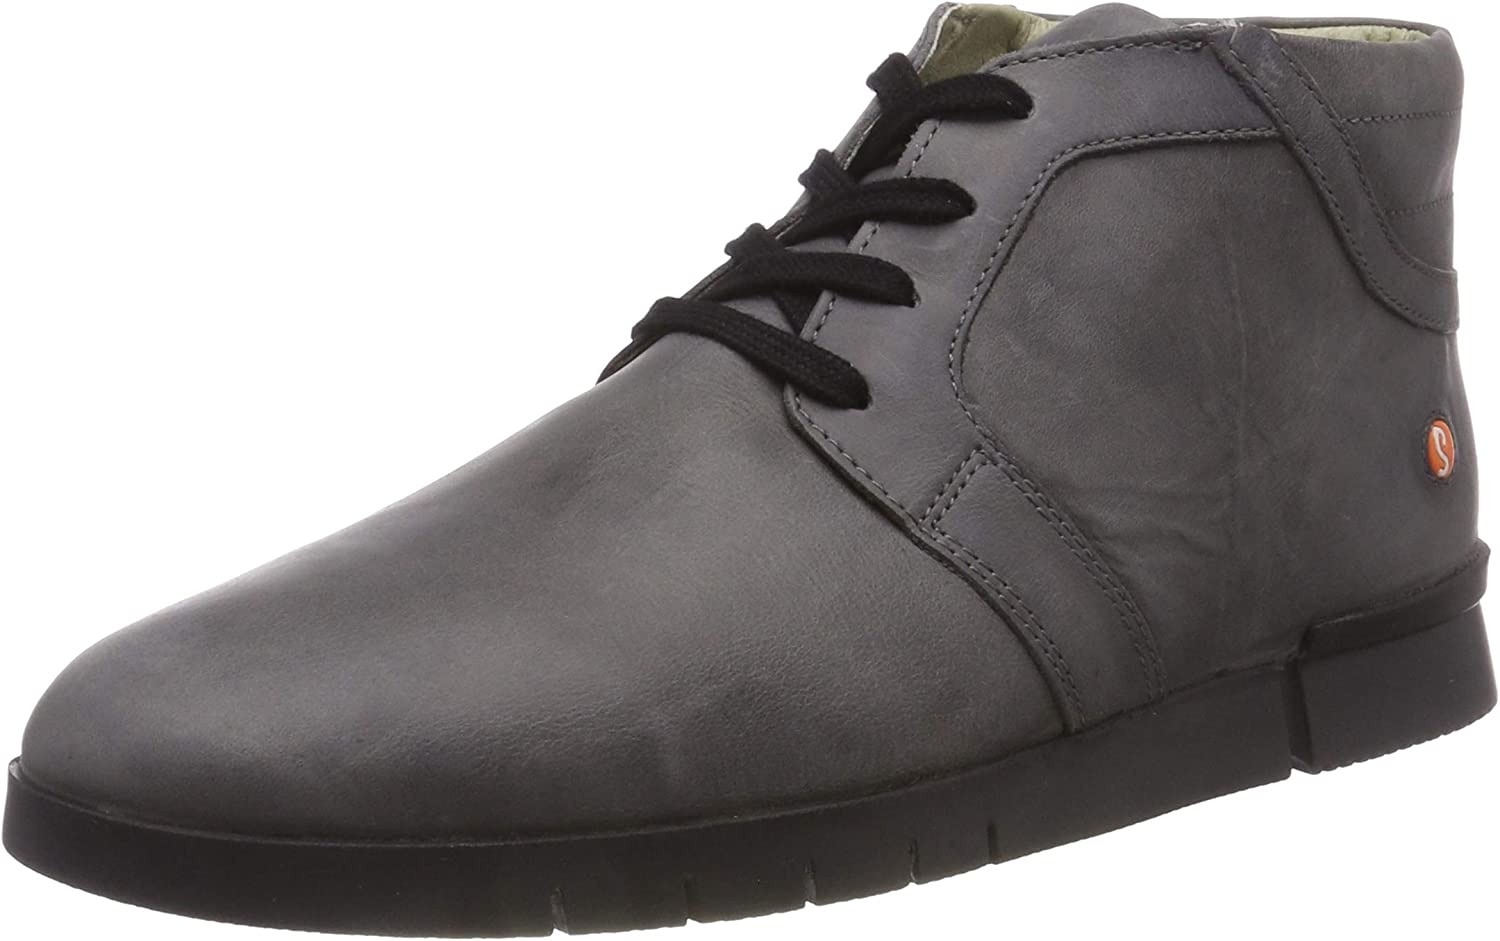 TALLA 40 EU. Softinos Cul479sof Corgi Leather, Zapatos de Cordones Brogue para Hombre